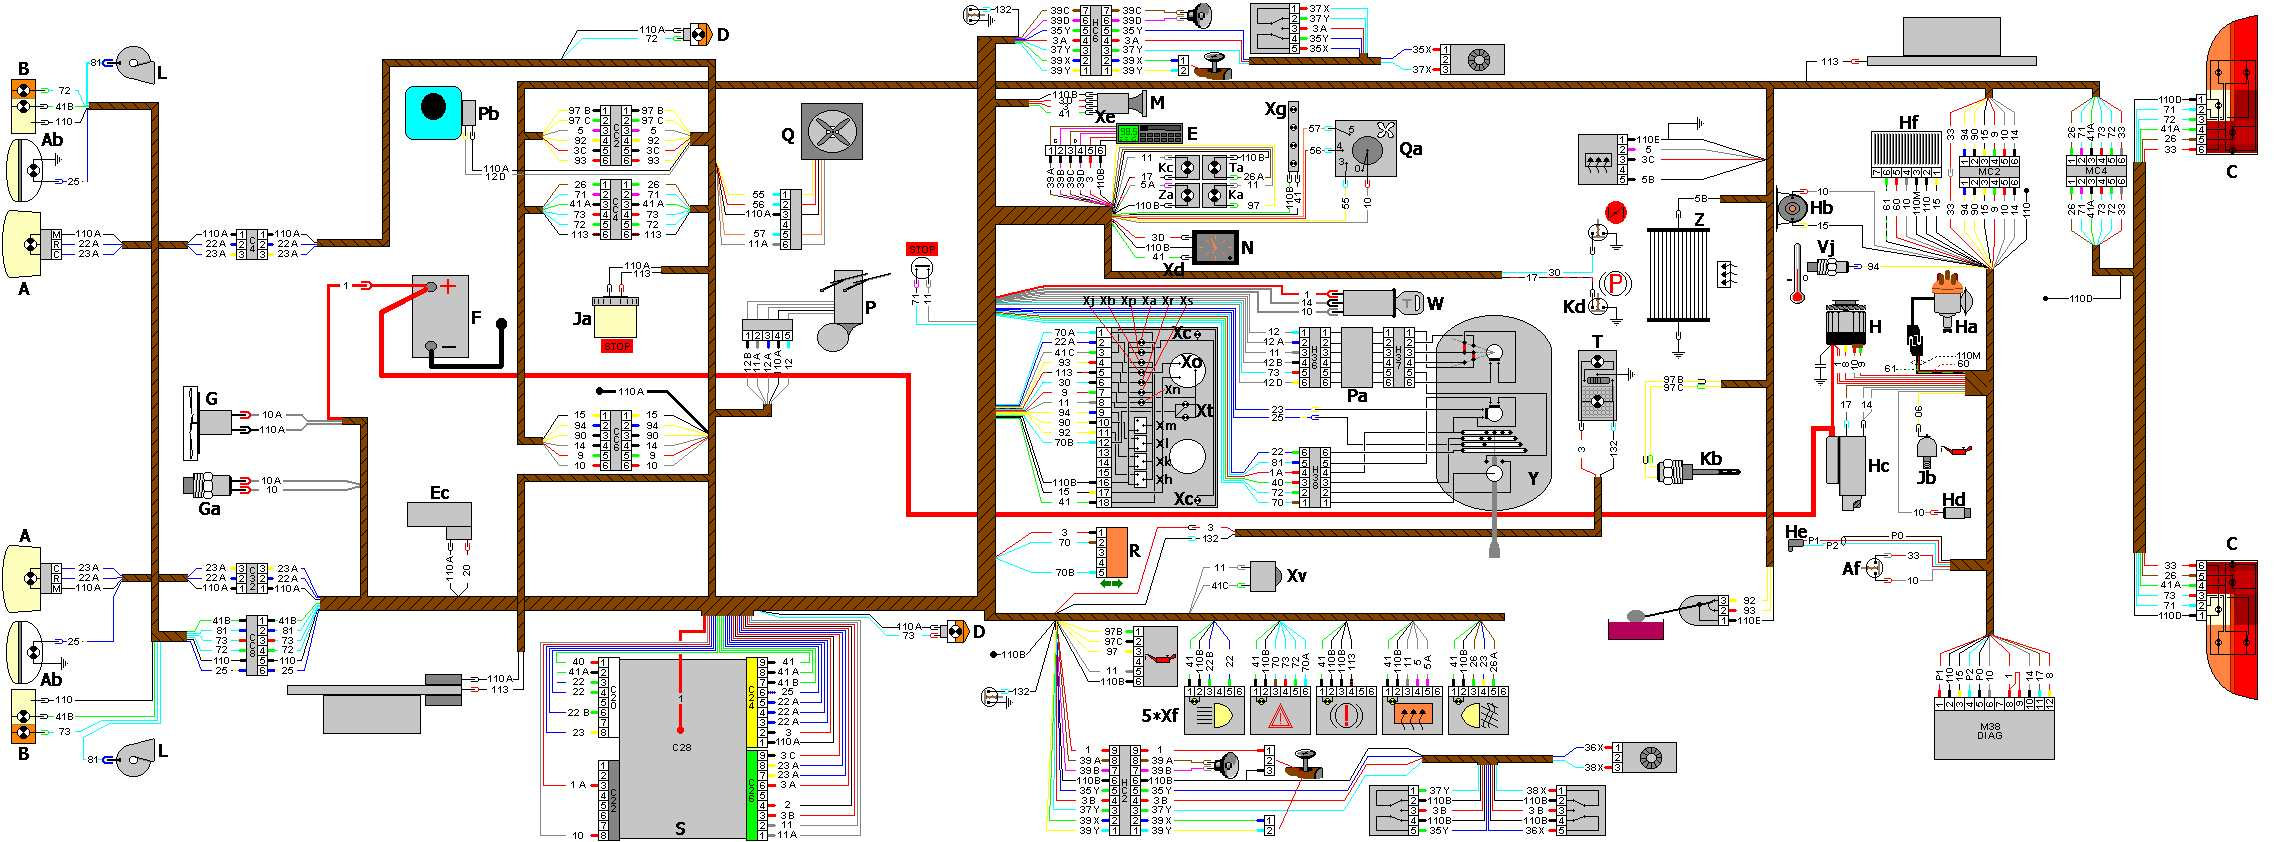 Peugeot 307 Heater Wiring Diagram Schematic 406 Faults Murena Skifte Vannpumpe Ta Ned Motor Blower